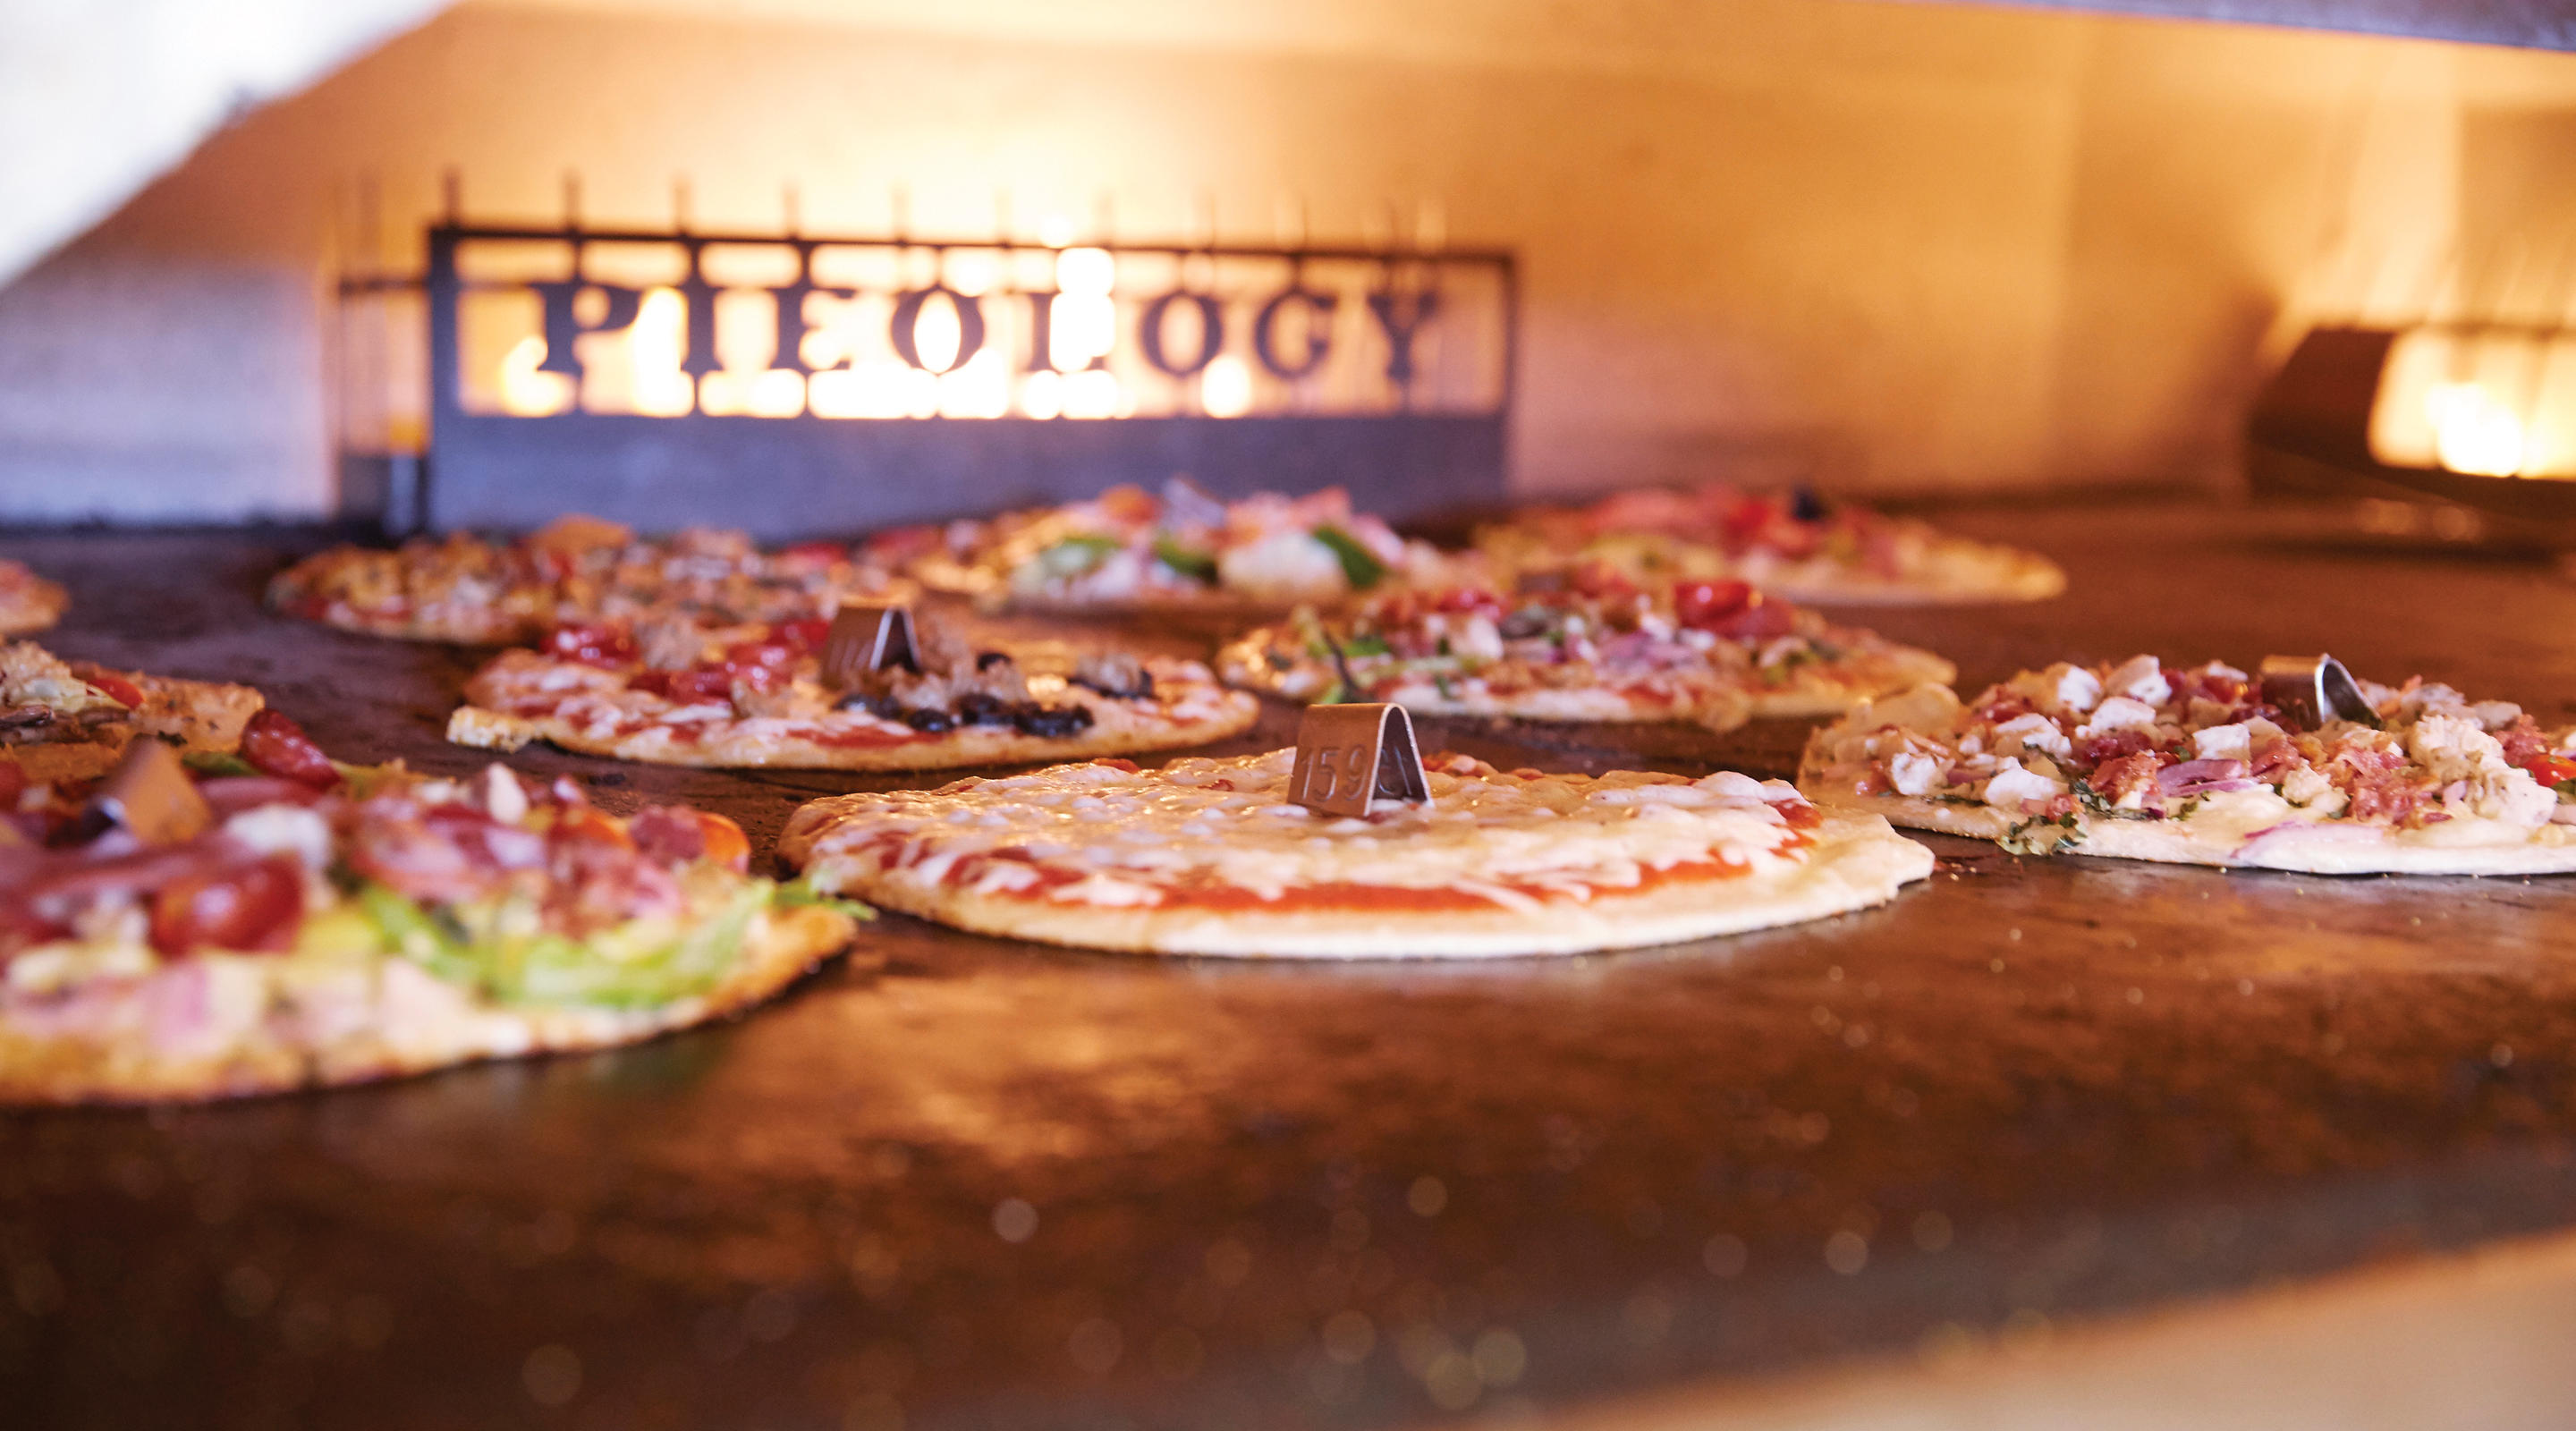 Pieology pizzas baking in oven